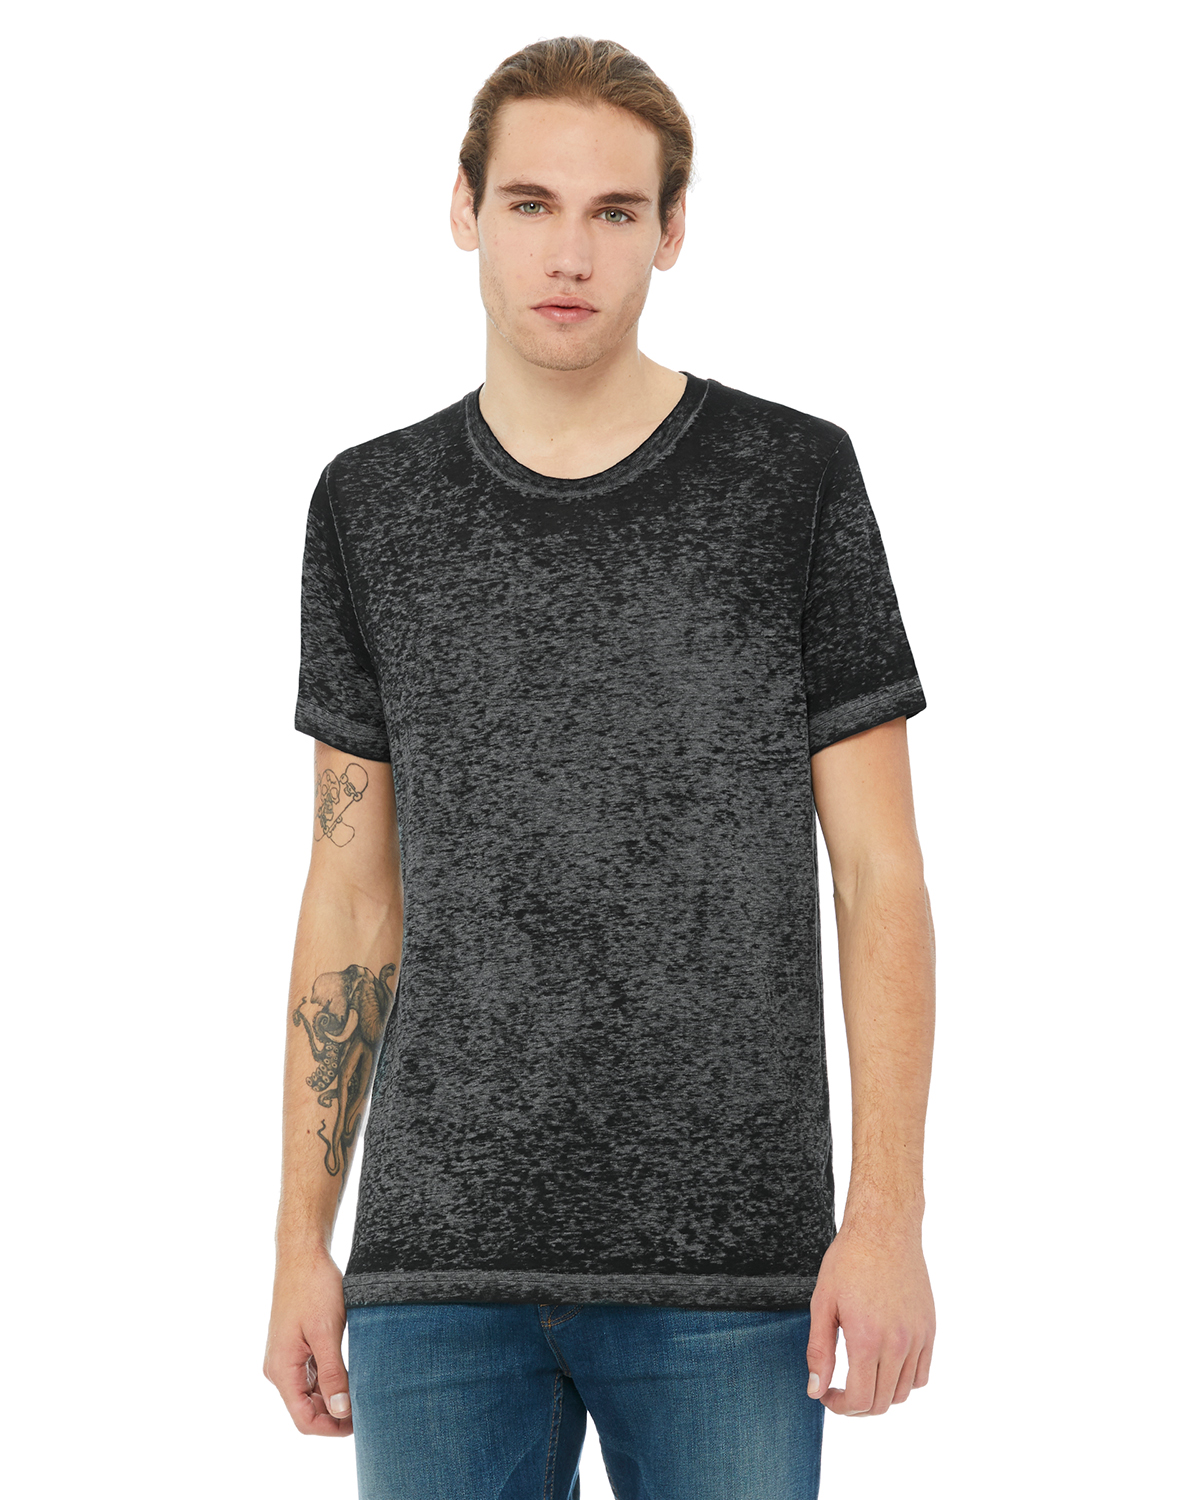 click to view Blk Acid Wash